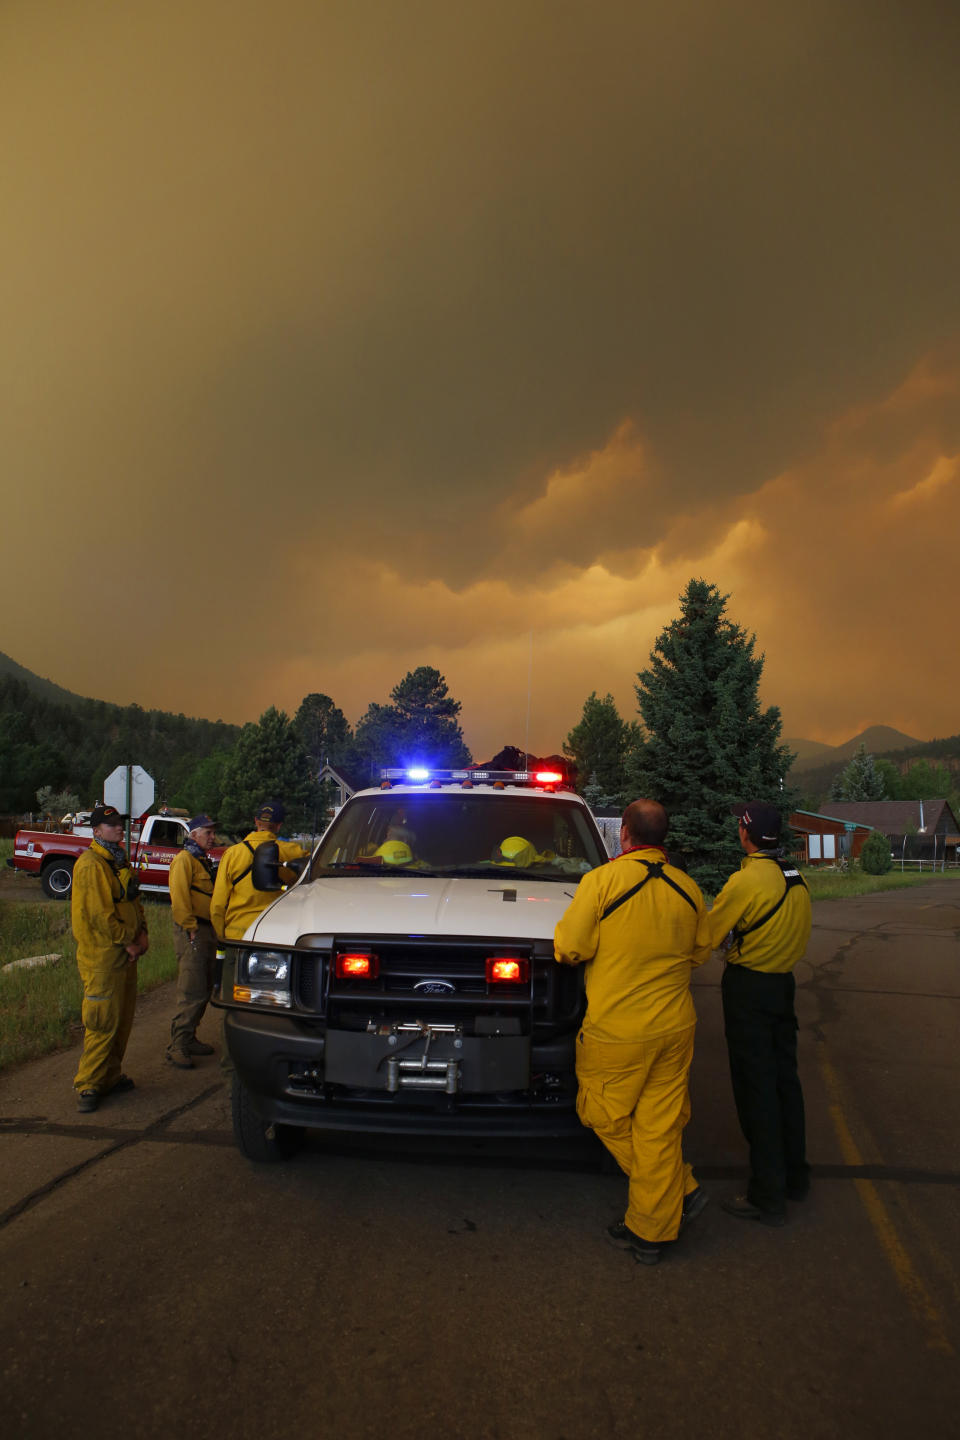 Firefighters stage in a residential area to protect homes in South Fork, Colo., as they monitor a wildfire that burns west of town on Friday evening June 21, 2013. The town was evacuated and highway U.S. 160 that passes through it was closed. (AP Photo/Ed Andrieski)